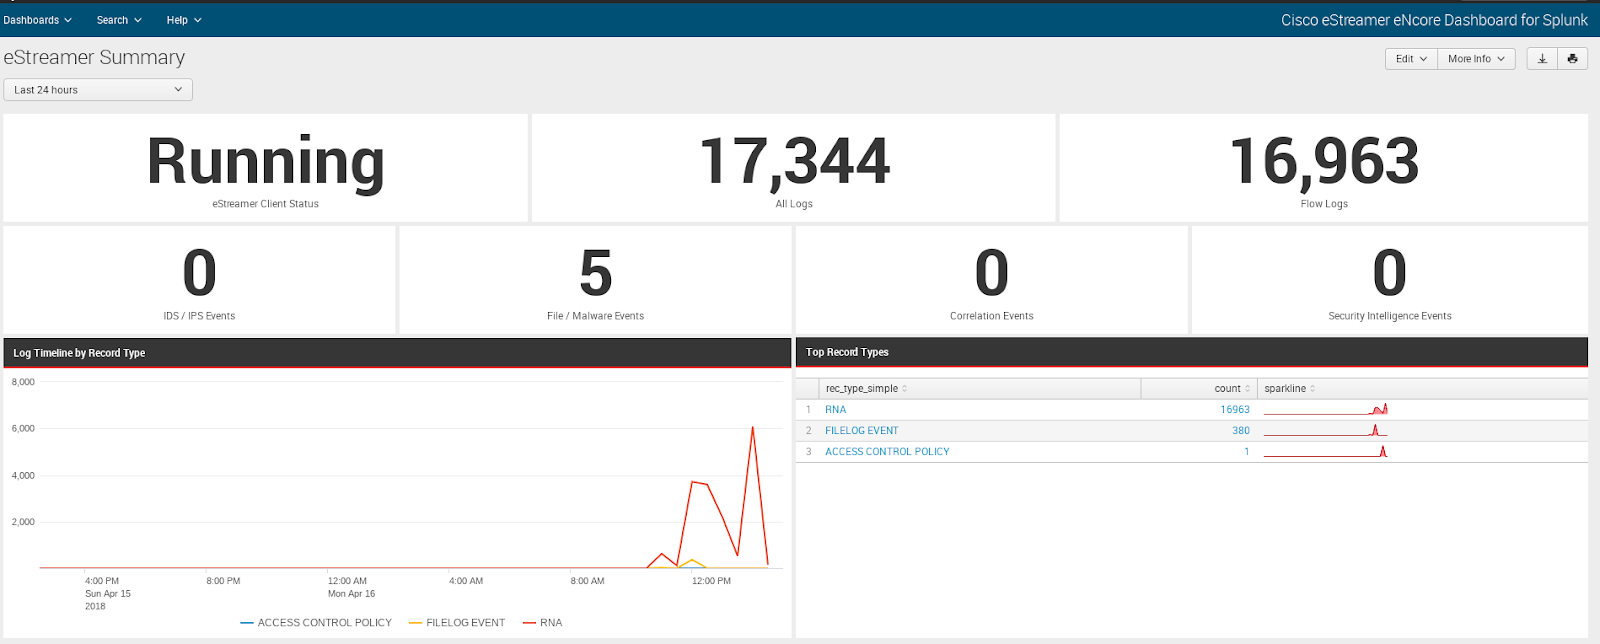 How to configure log sending from Cisco FirePower to Splunk